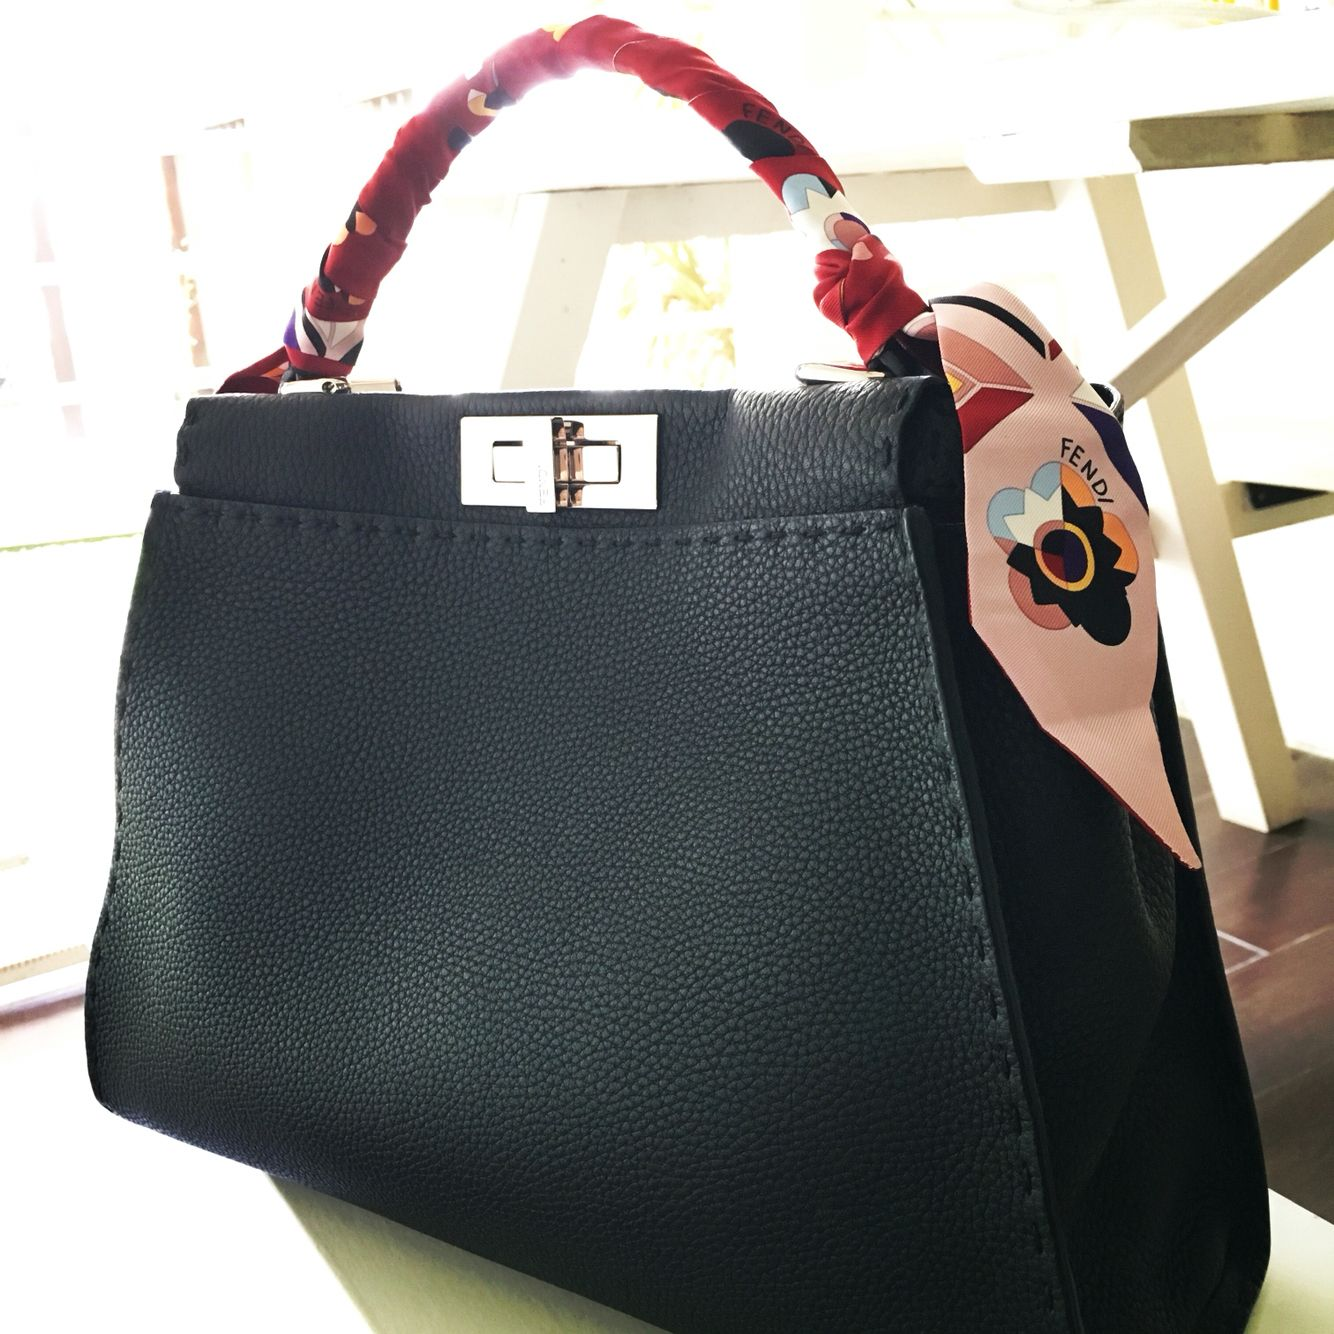 My new Fendi Peekaboo Selleria in Small with a floral Fendi wrappy    twilly!!! 5977c32ee06a9